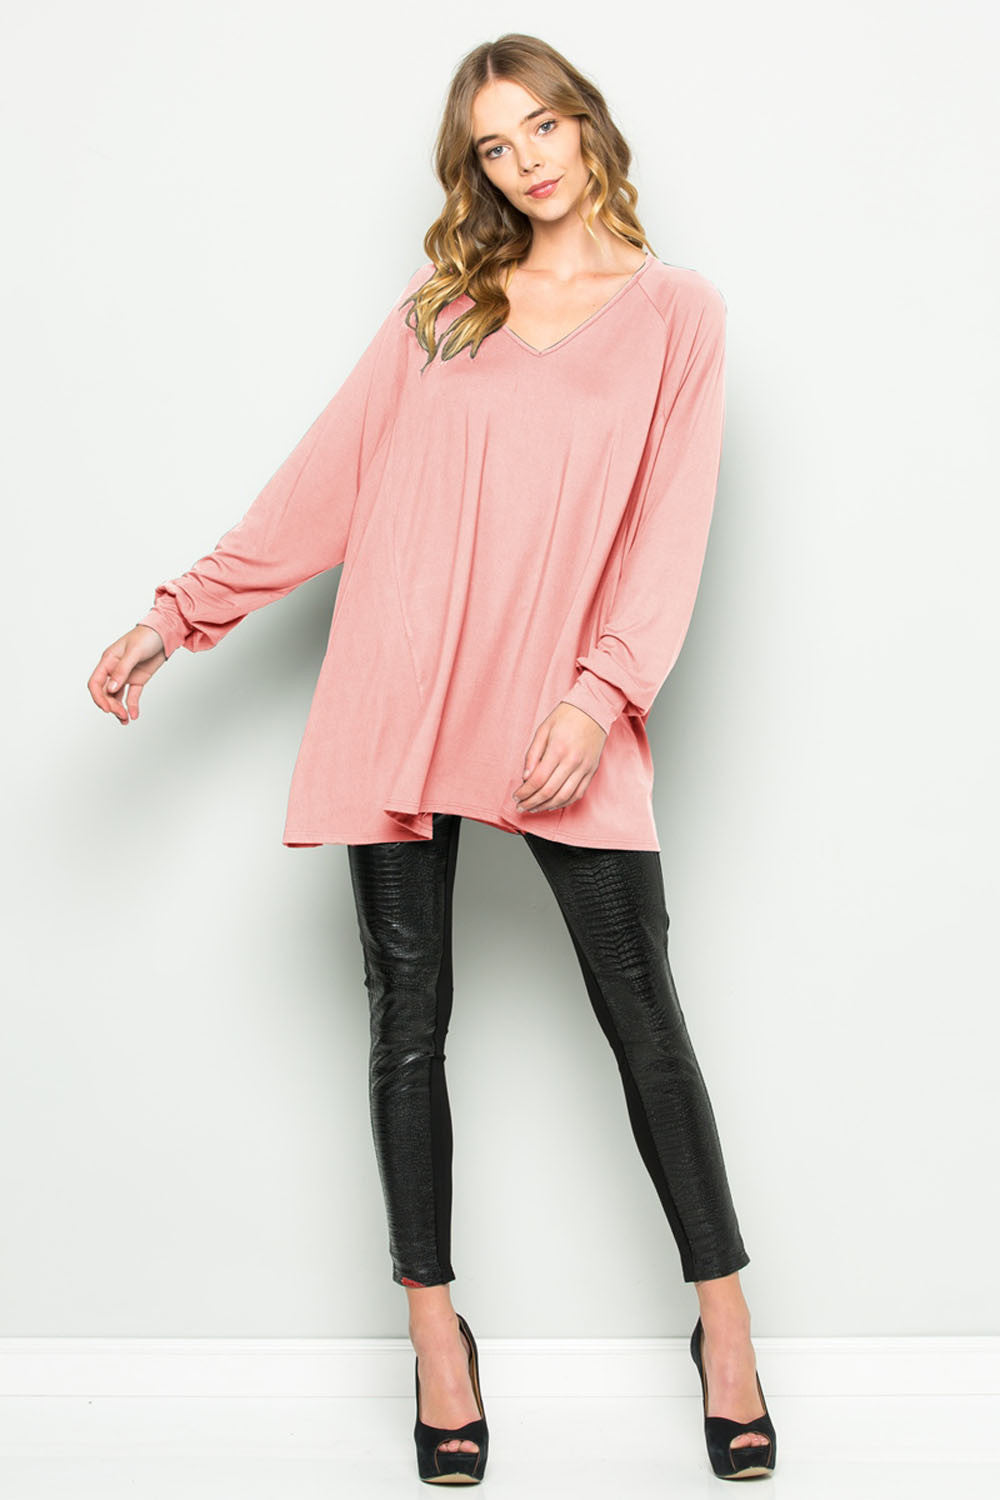 Bishop Sleeve Tunic - tunics - GOZON